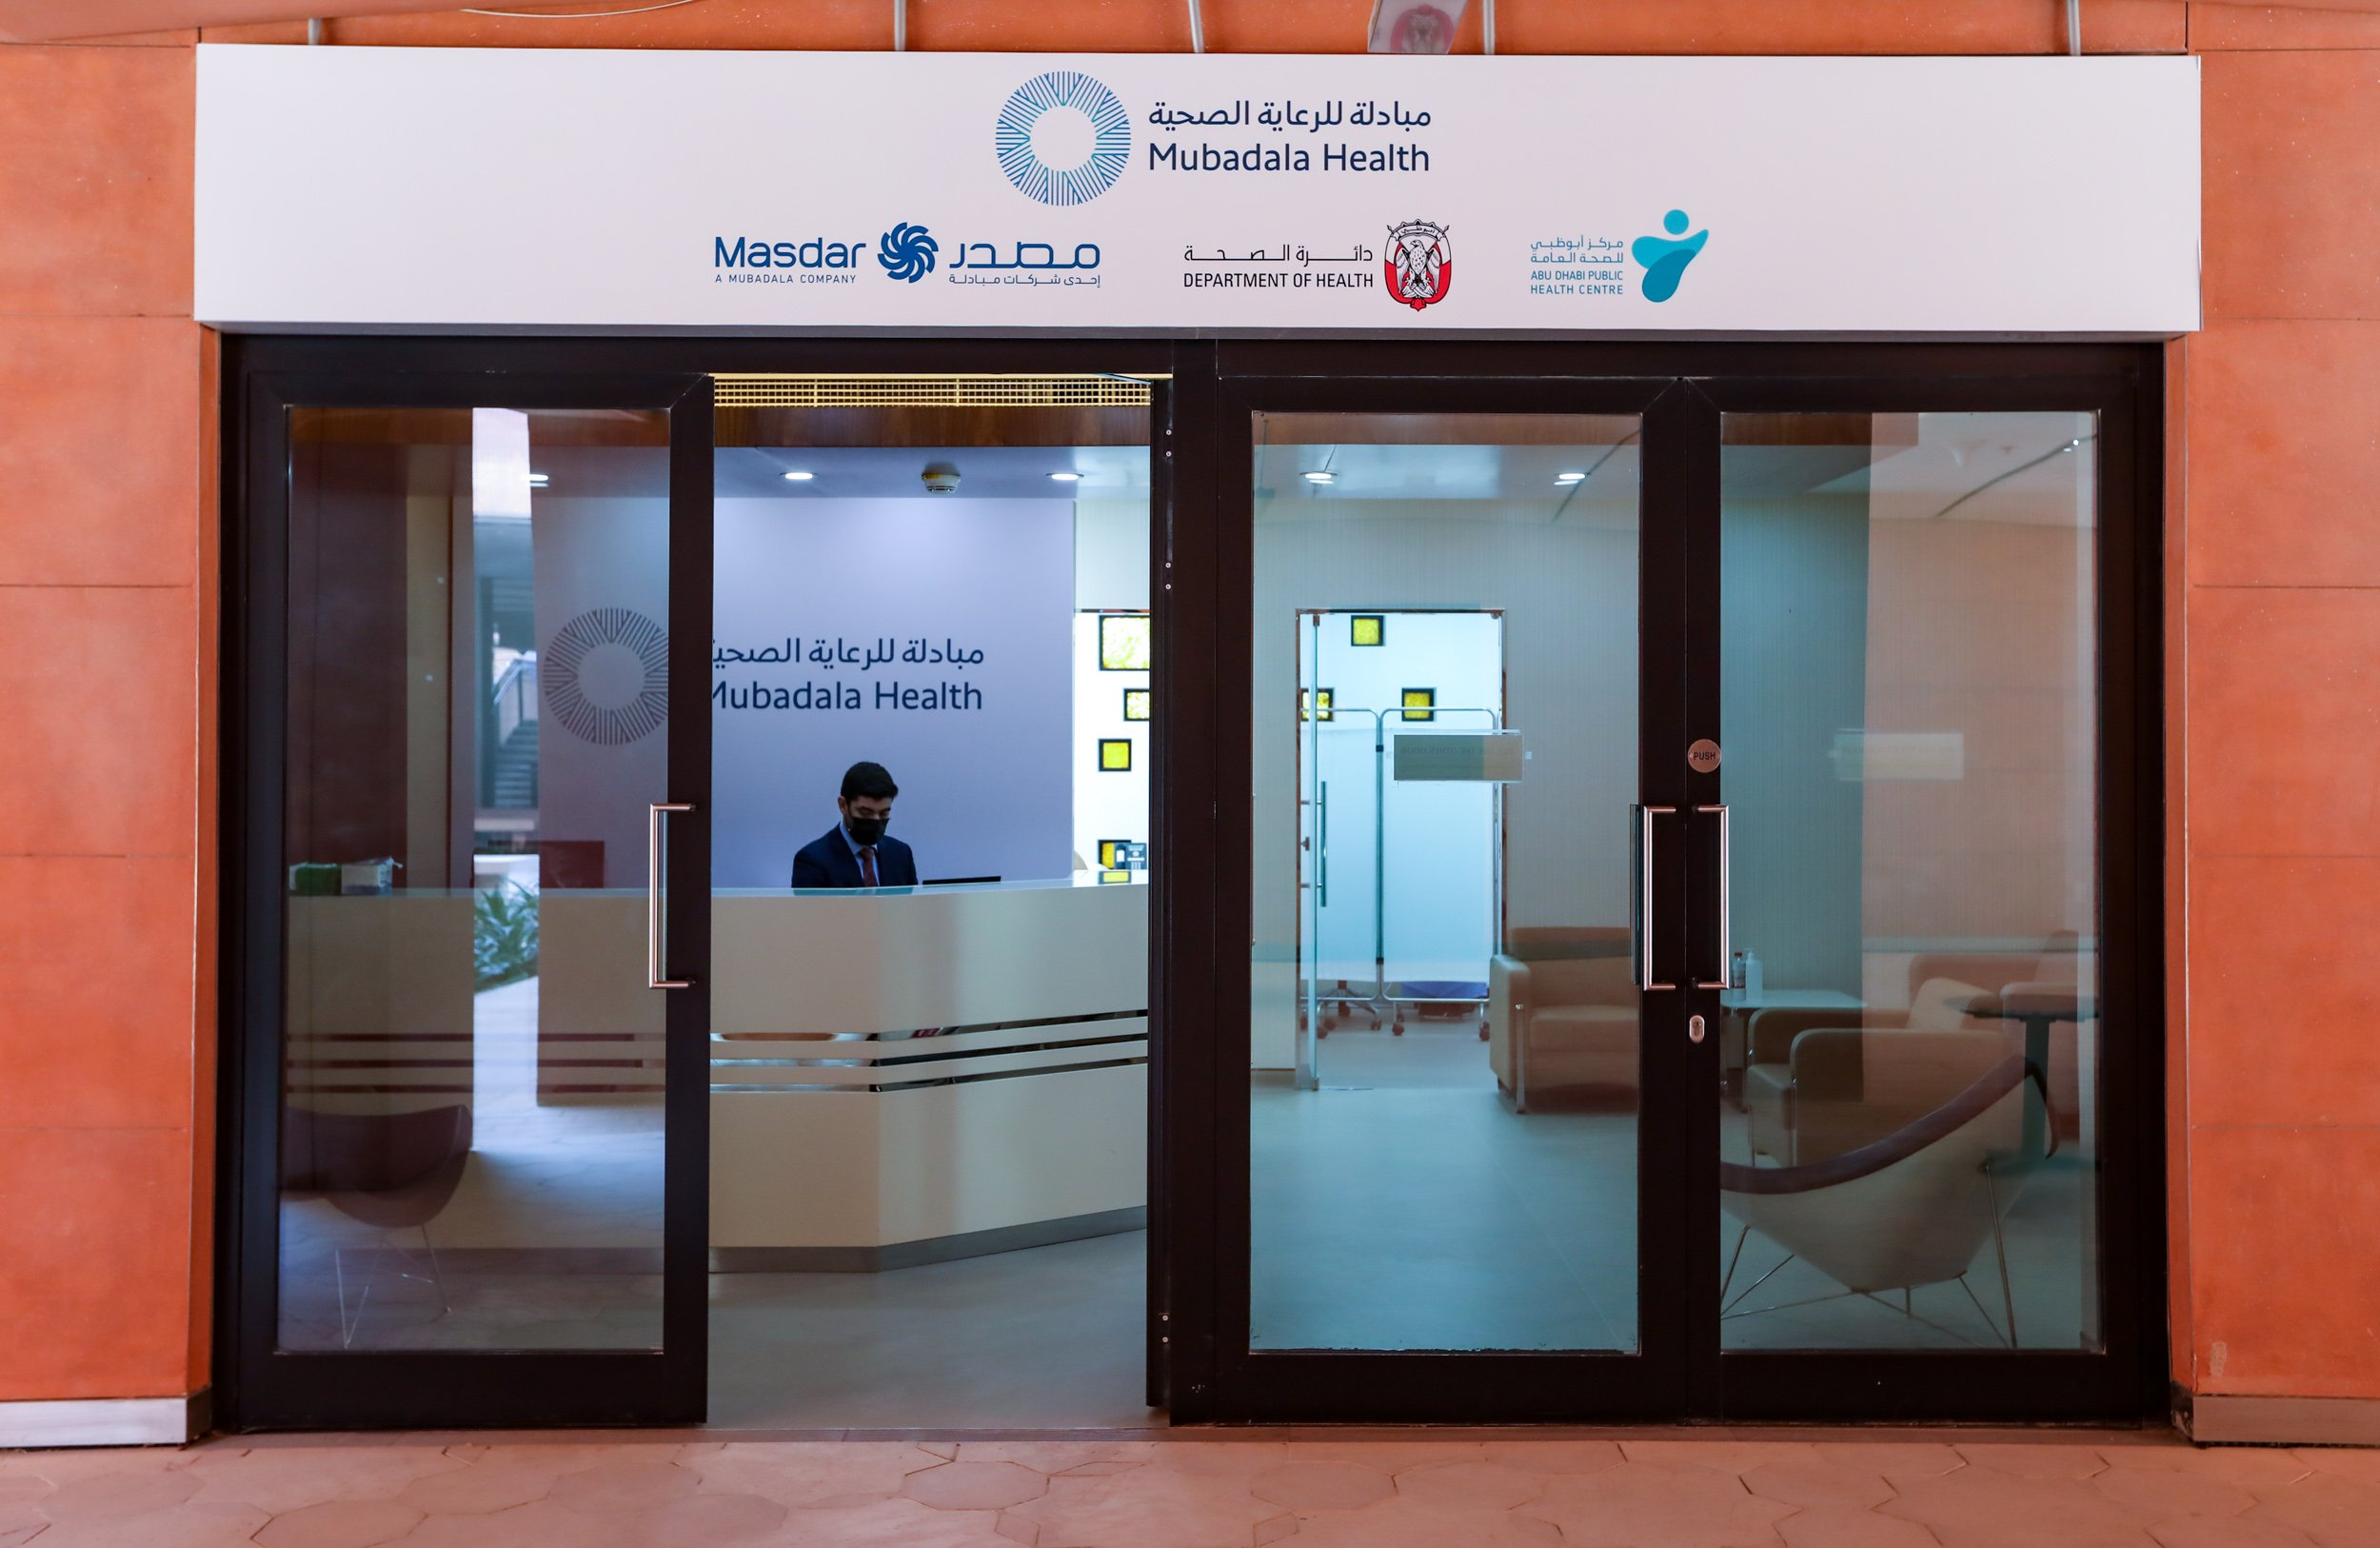 Mubadala Health Opens COVID-19 Vaccination Centre in Masdar City